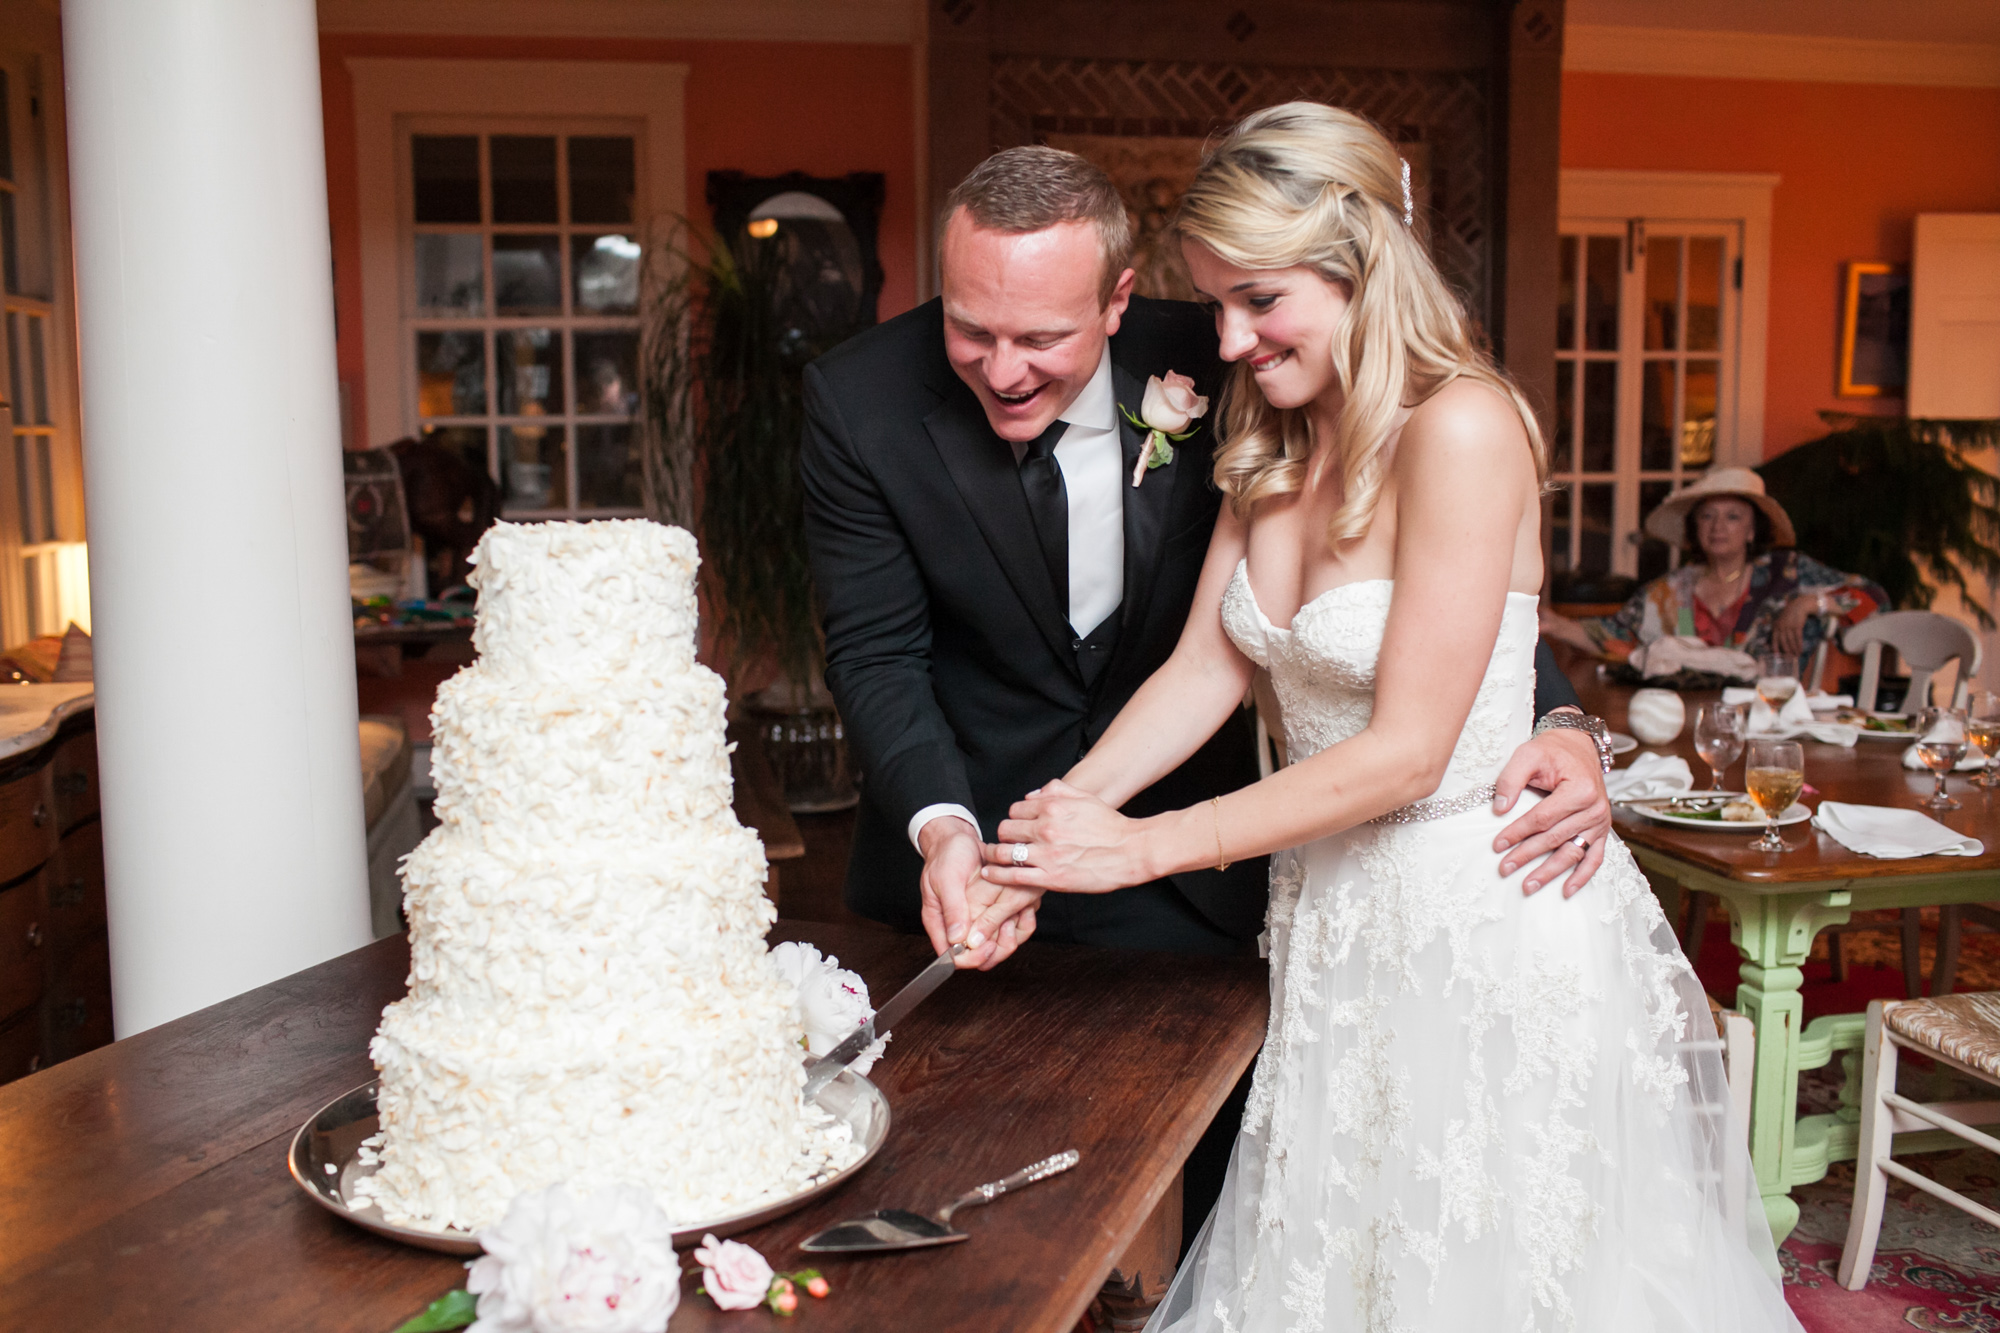 38Katy_Eddie._Talcott_House_Wedding_Westbrook_CT_Tanya_Salazar_Photographyjpg.jpg